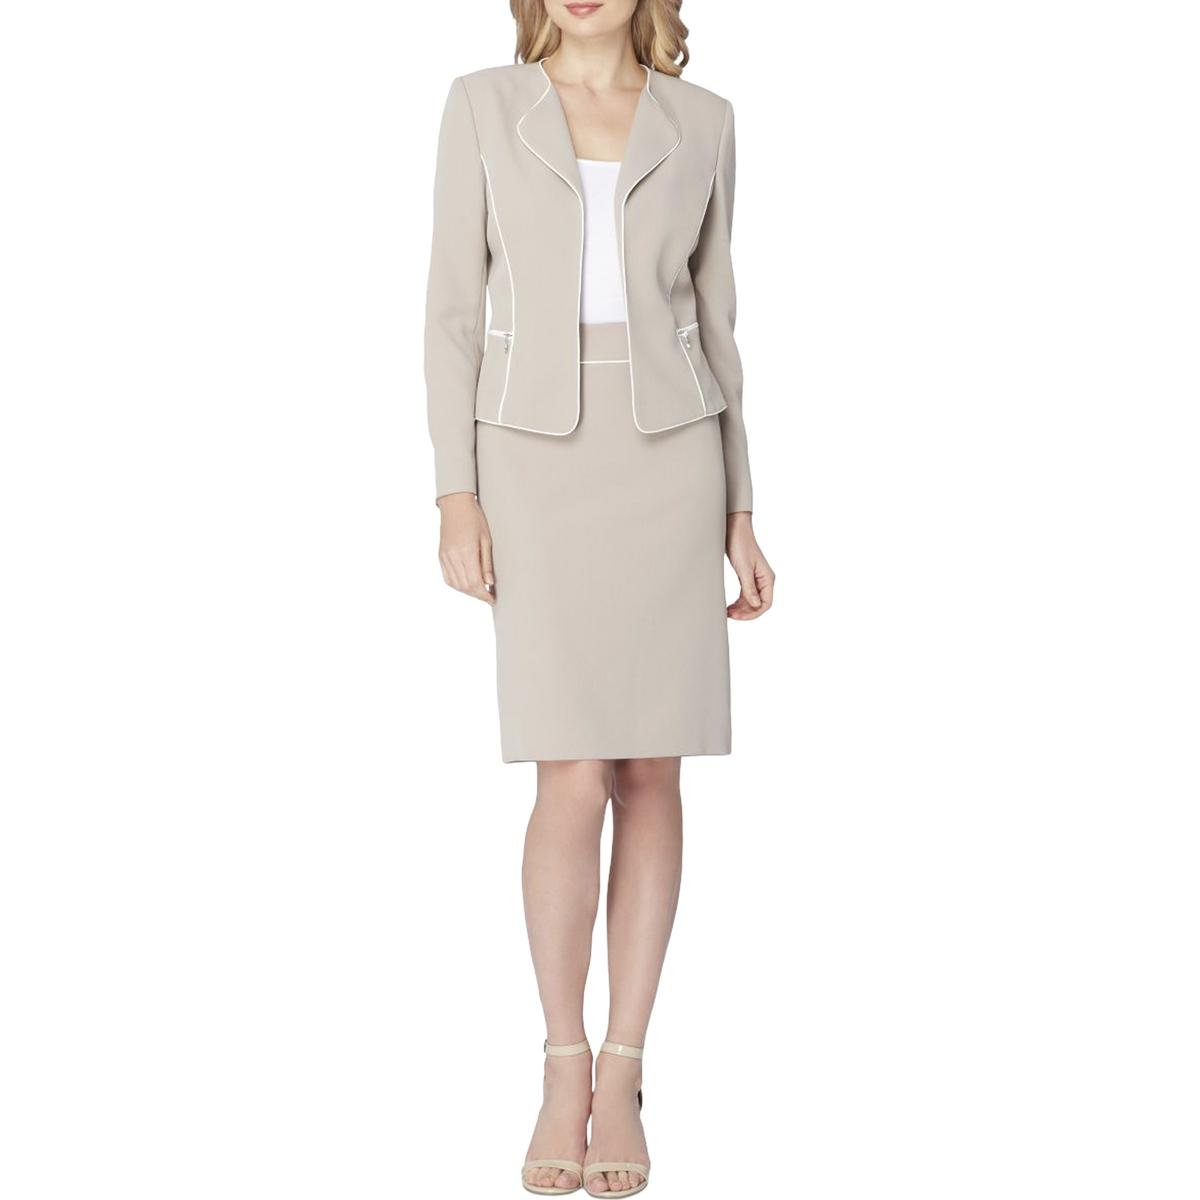 Tahari by Arthur S. Levine Women's Crepe Skirt Suit with Contrast Piping, Beige/Ivory, 18